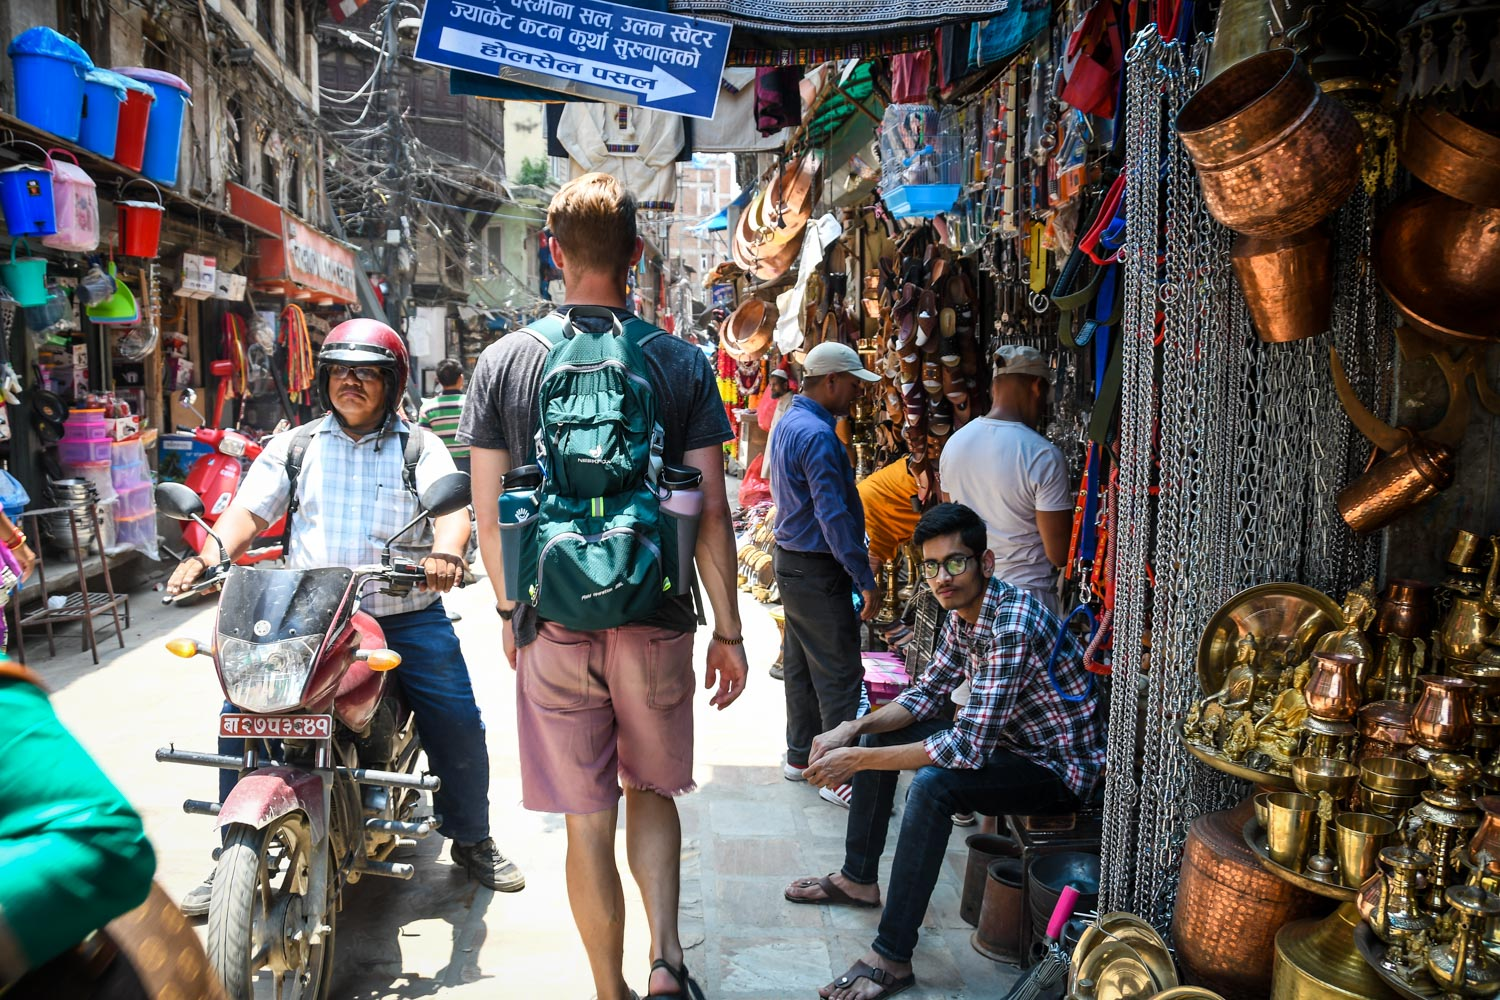 Things to Do in Nepal Shopping markets Street